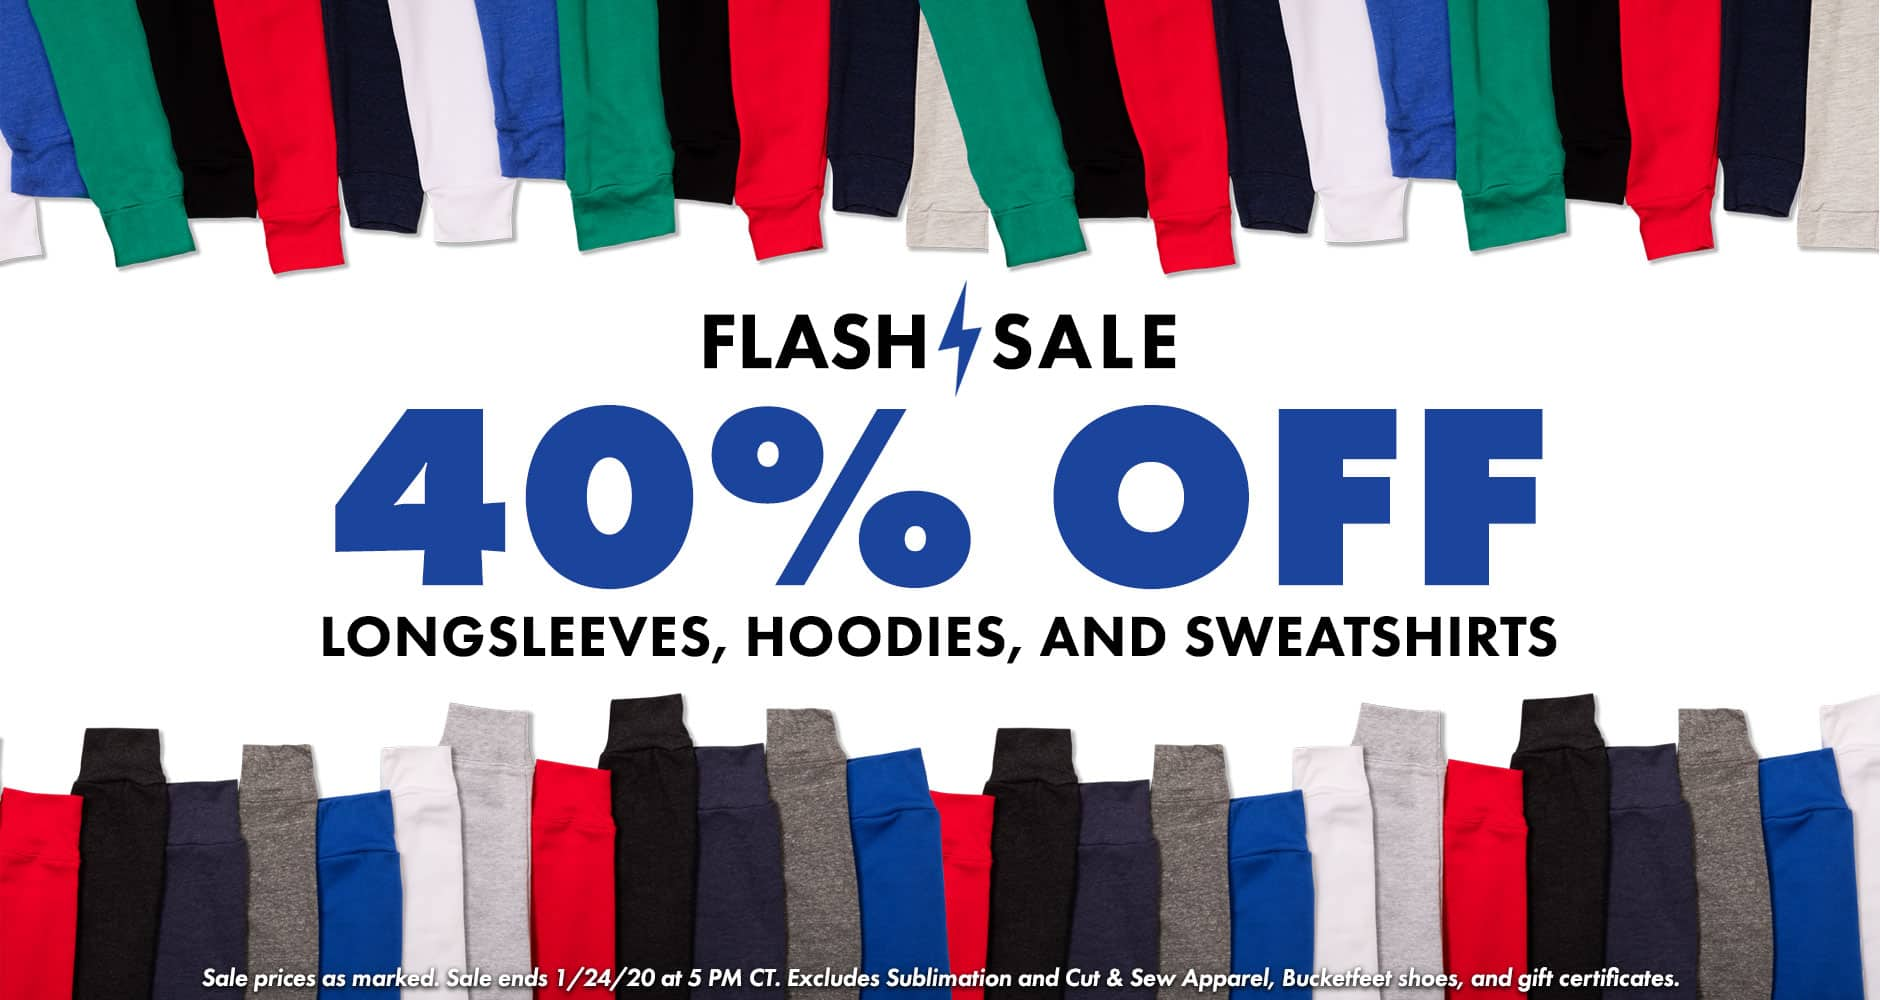 Shop the Threadless Flash Sale 40% off Hoodies, Sweatshirts and Long Sleeves